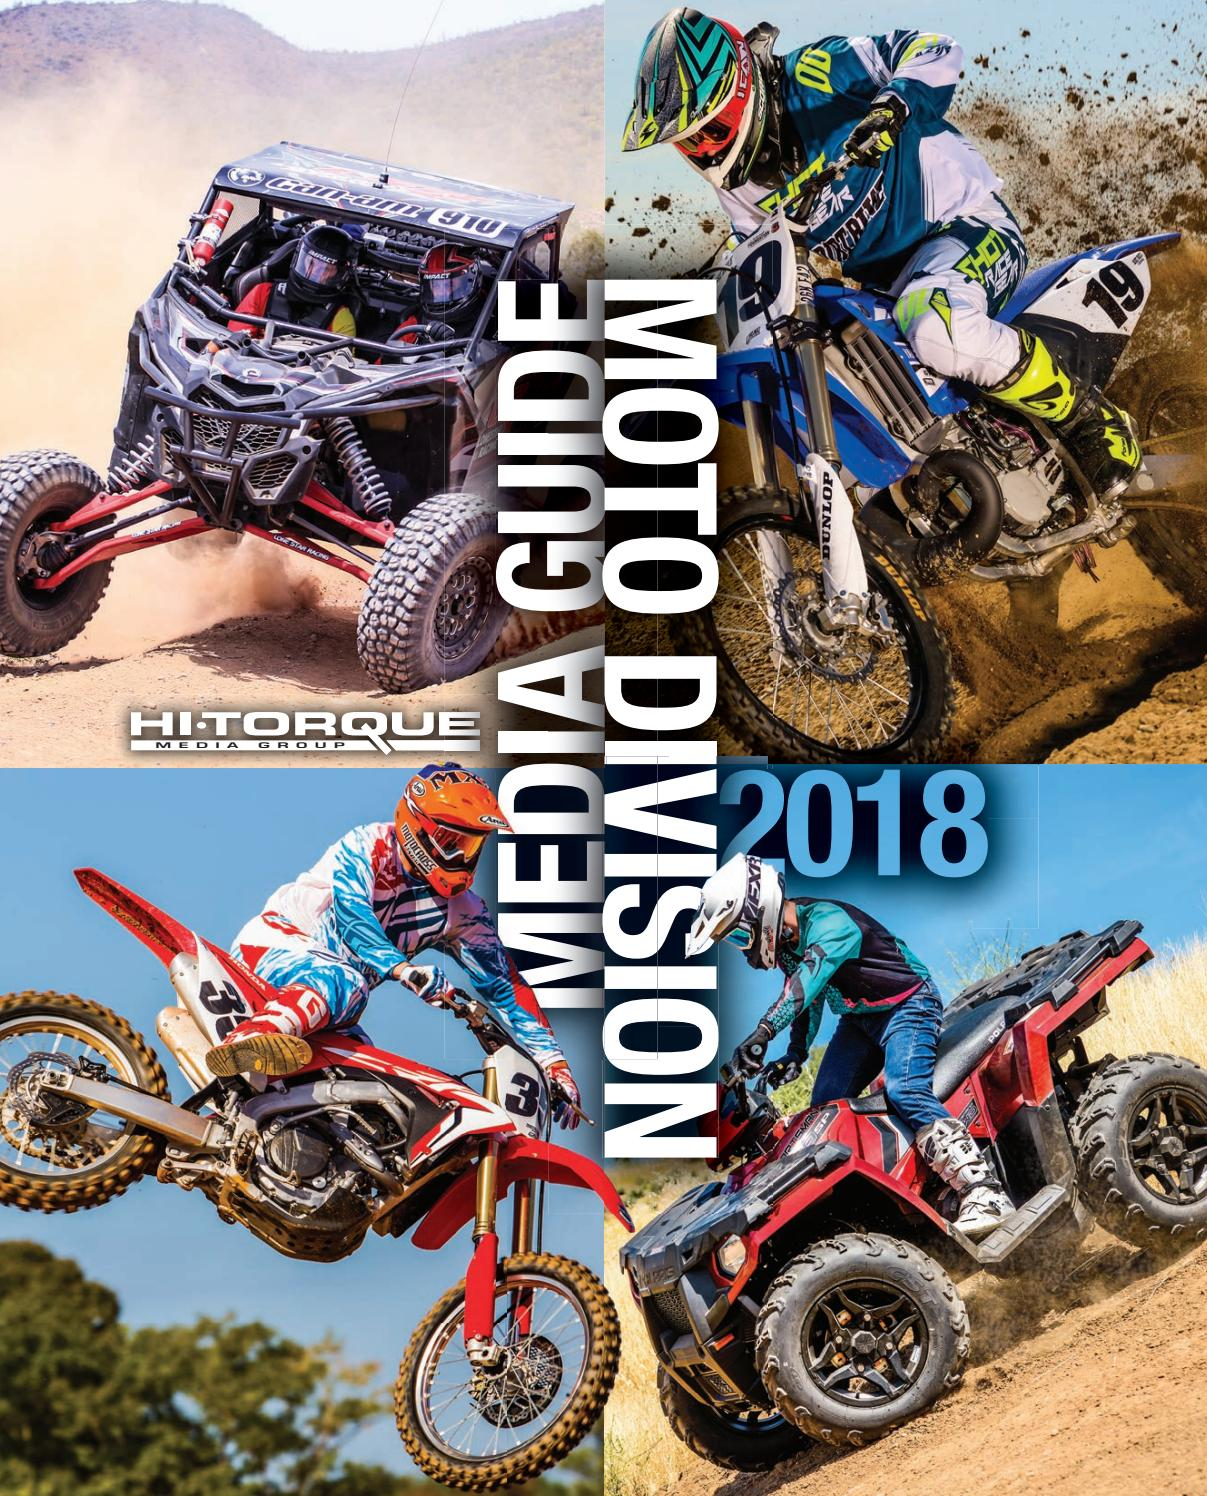 2018 media guide moto by Hi-Torque Publications - issuu